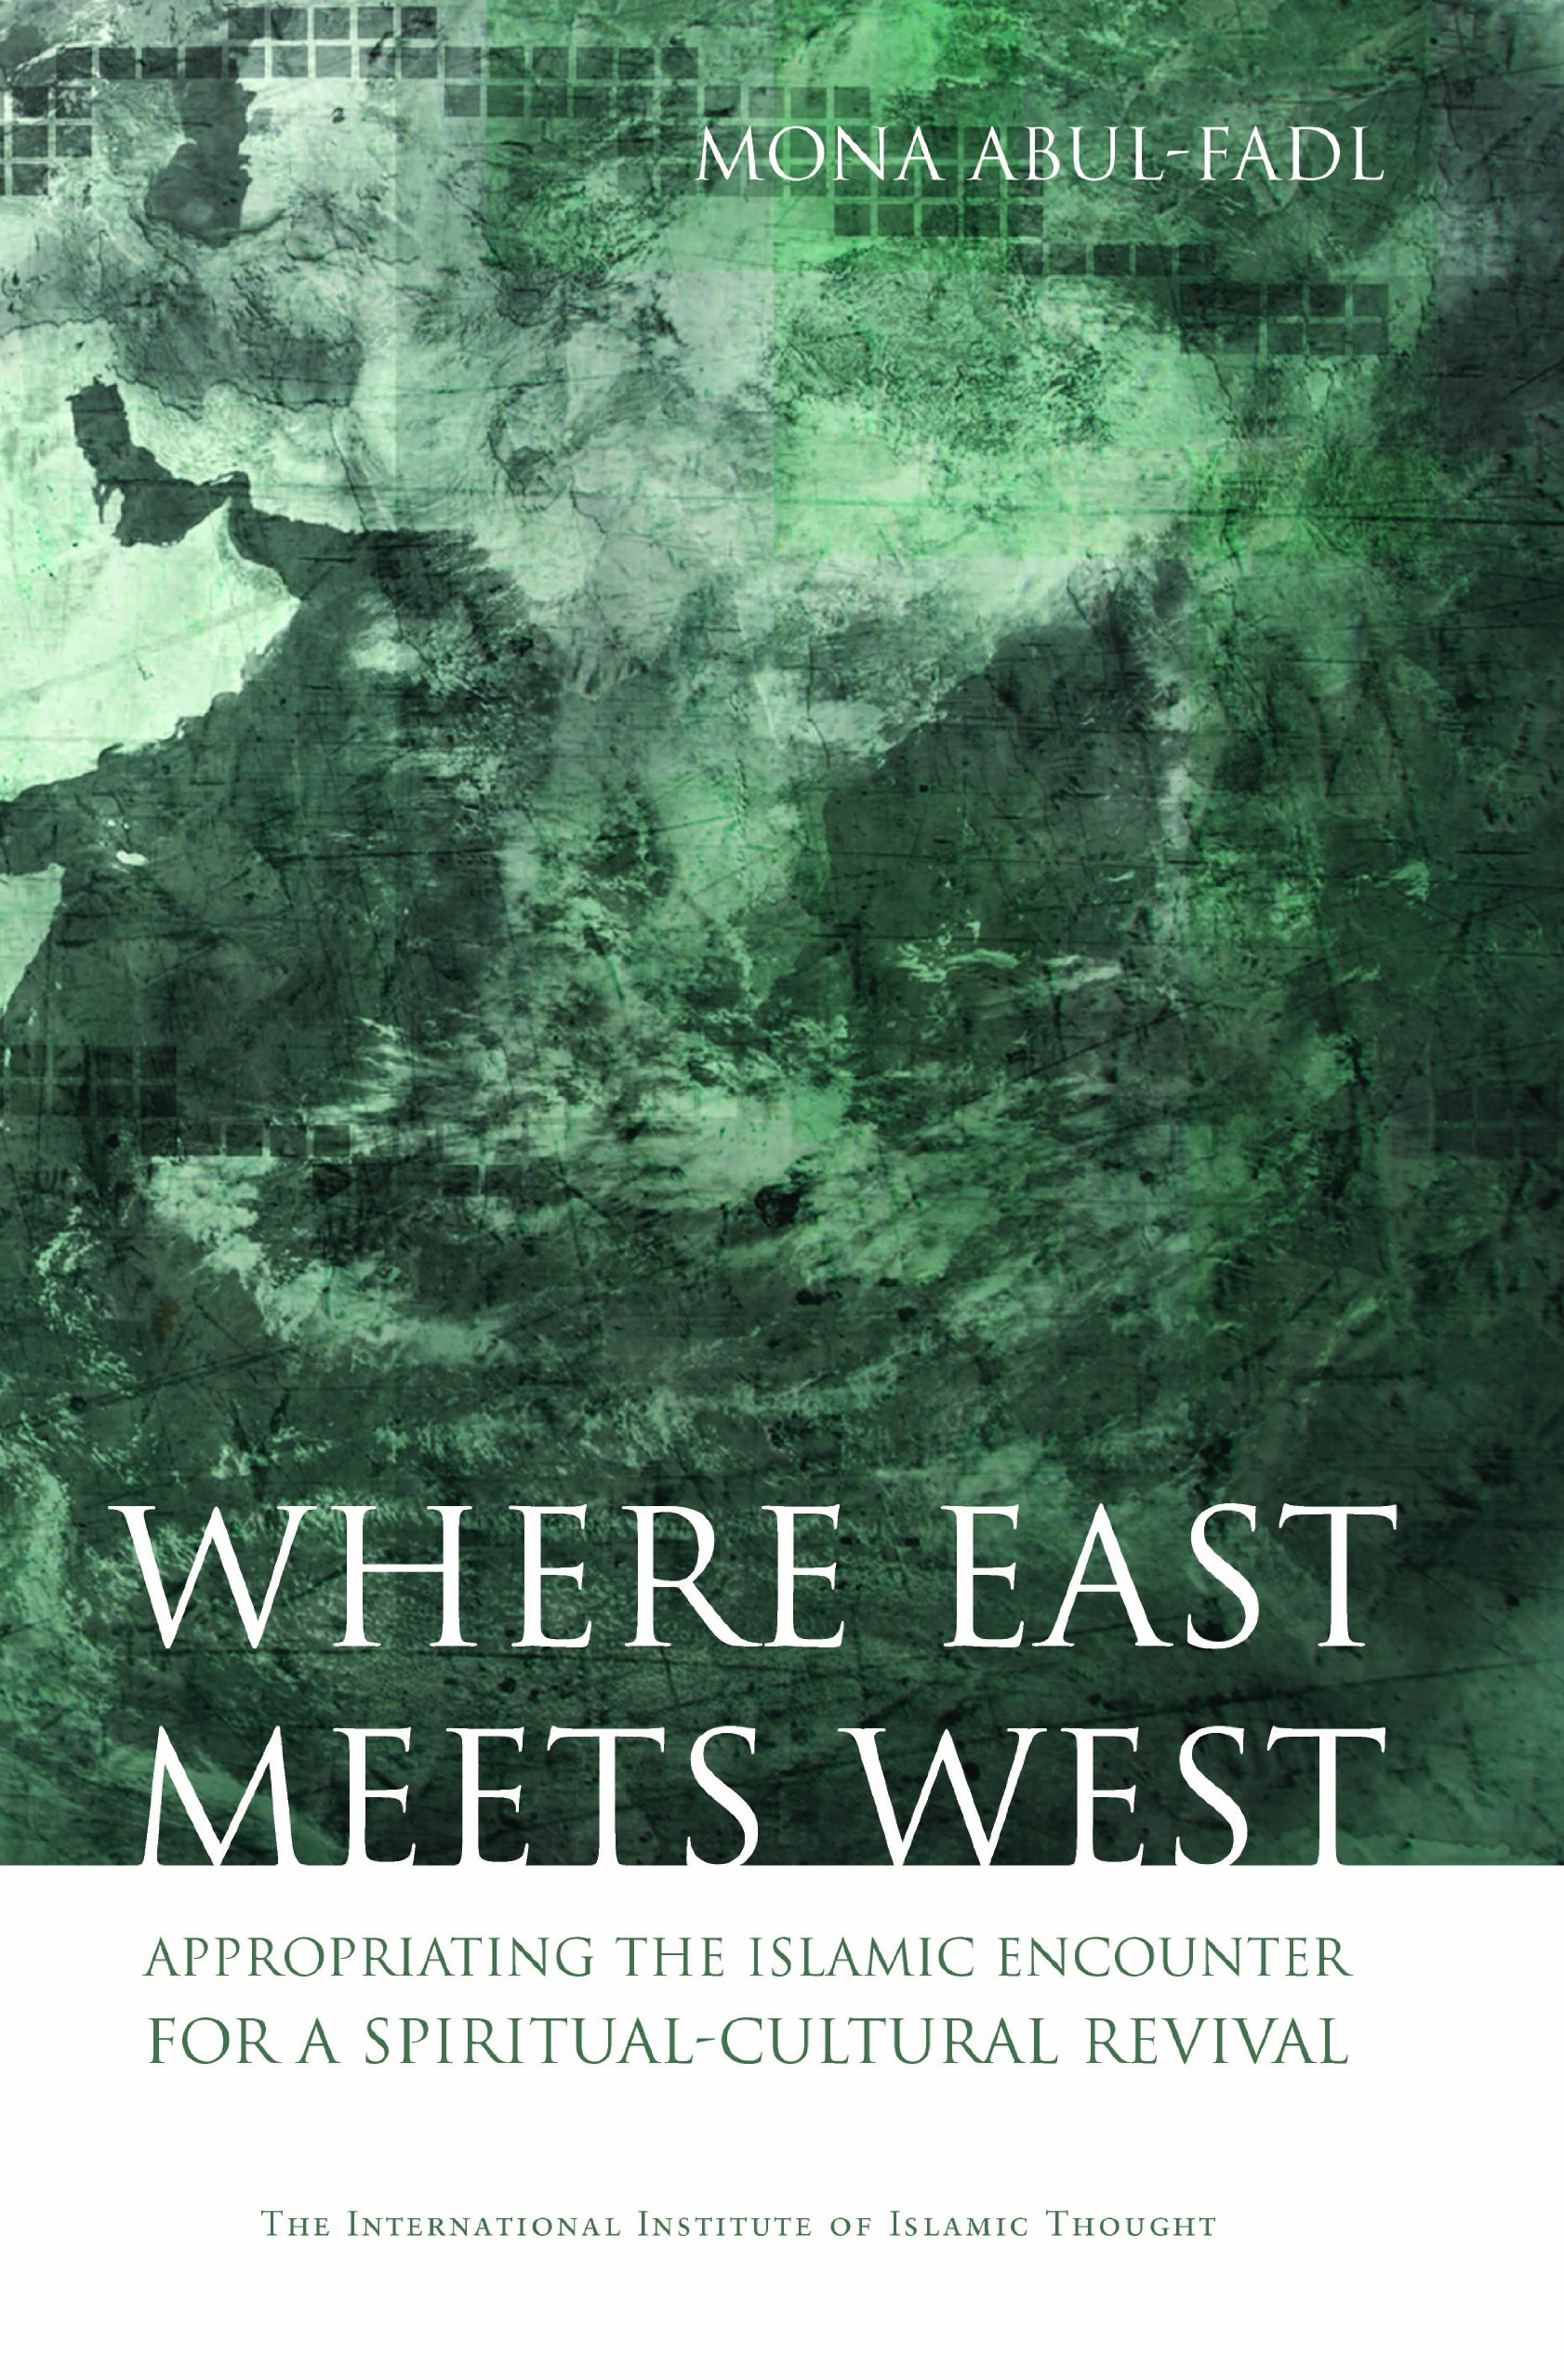 Download Where East Meets West: Appropriating the Islamic Encounter for A Spiritual-Cultural Revival ebook